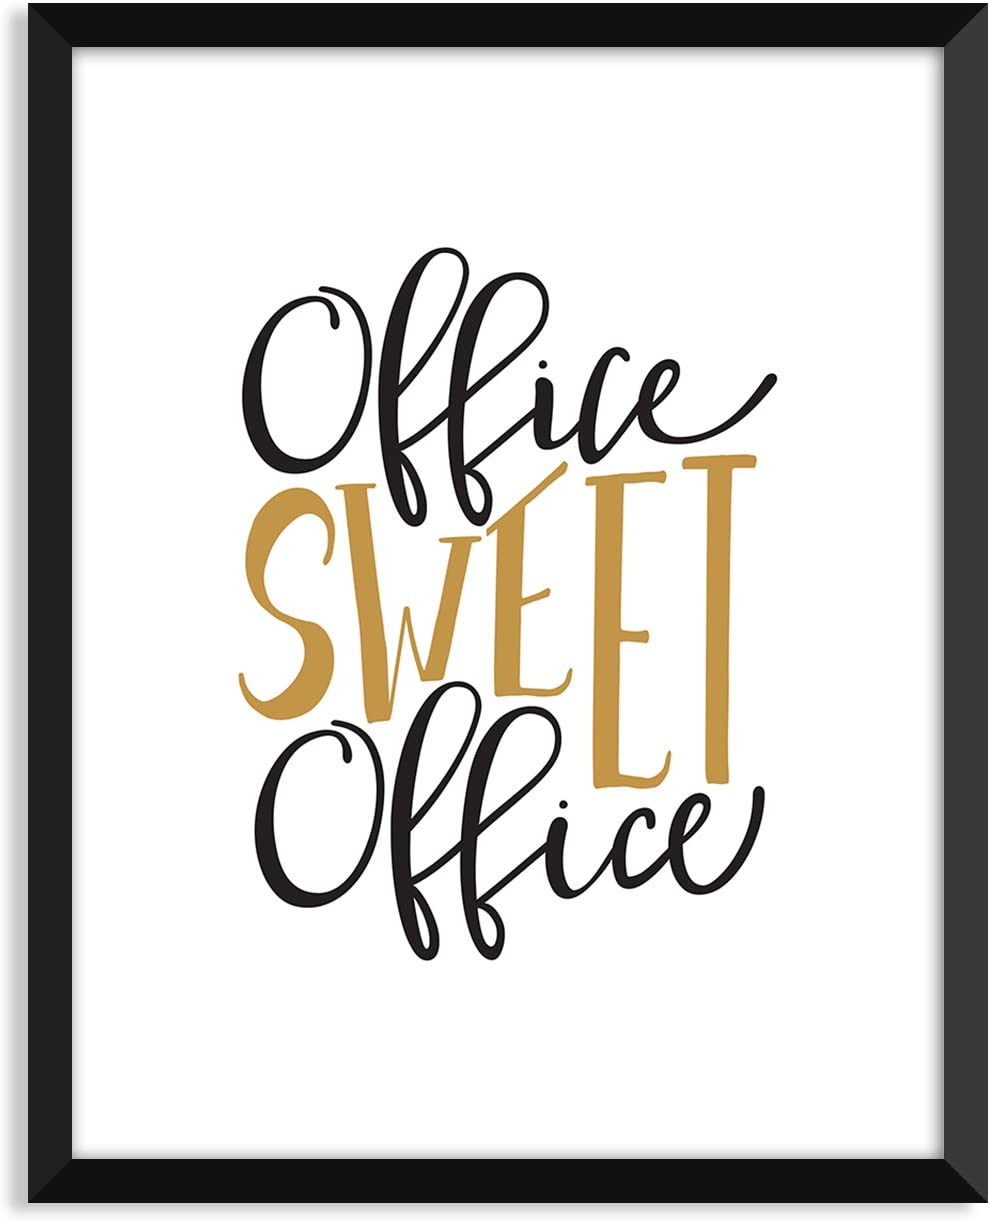 Serif Design Studios Office Sweet Office, Inspiration Quote, Funny, Adult, Minimalist Poster, Home Decor, College Dorm Room Decorations, Wall Art